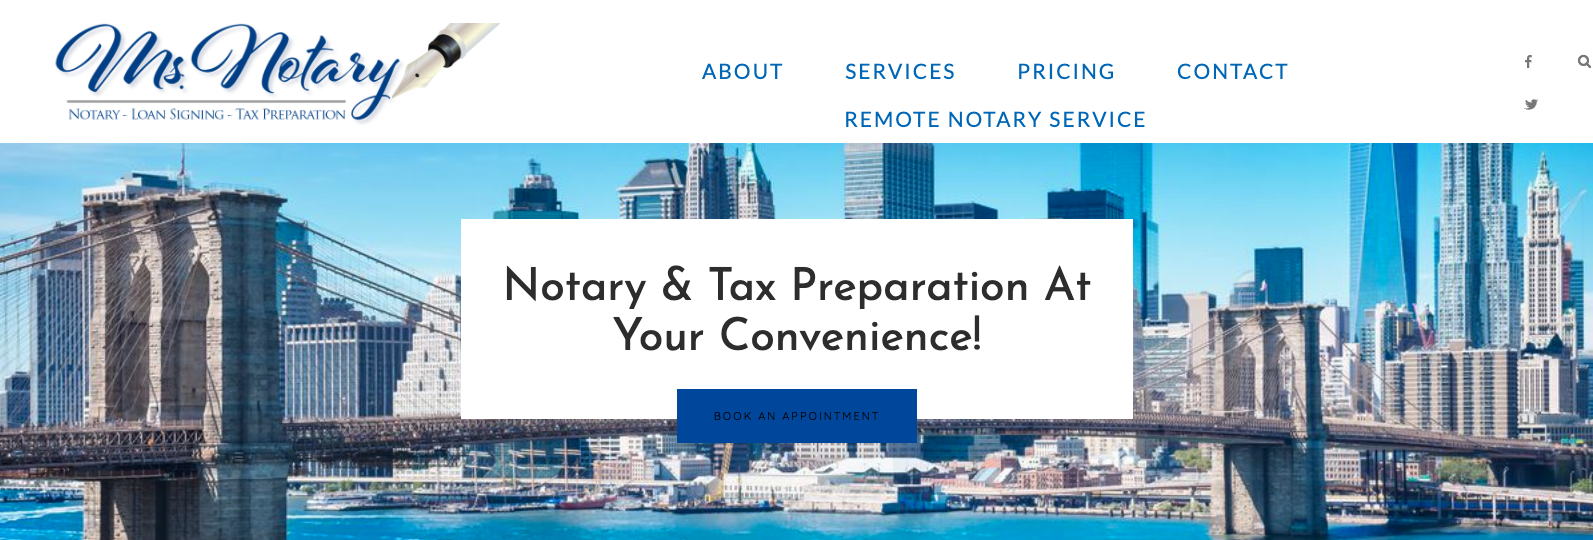 Ms. Notary NY Website Copywriting Project